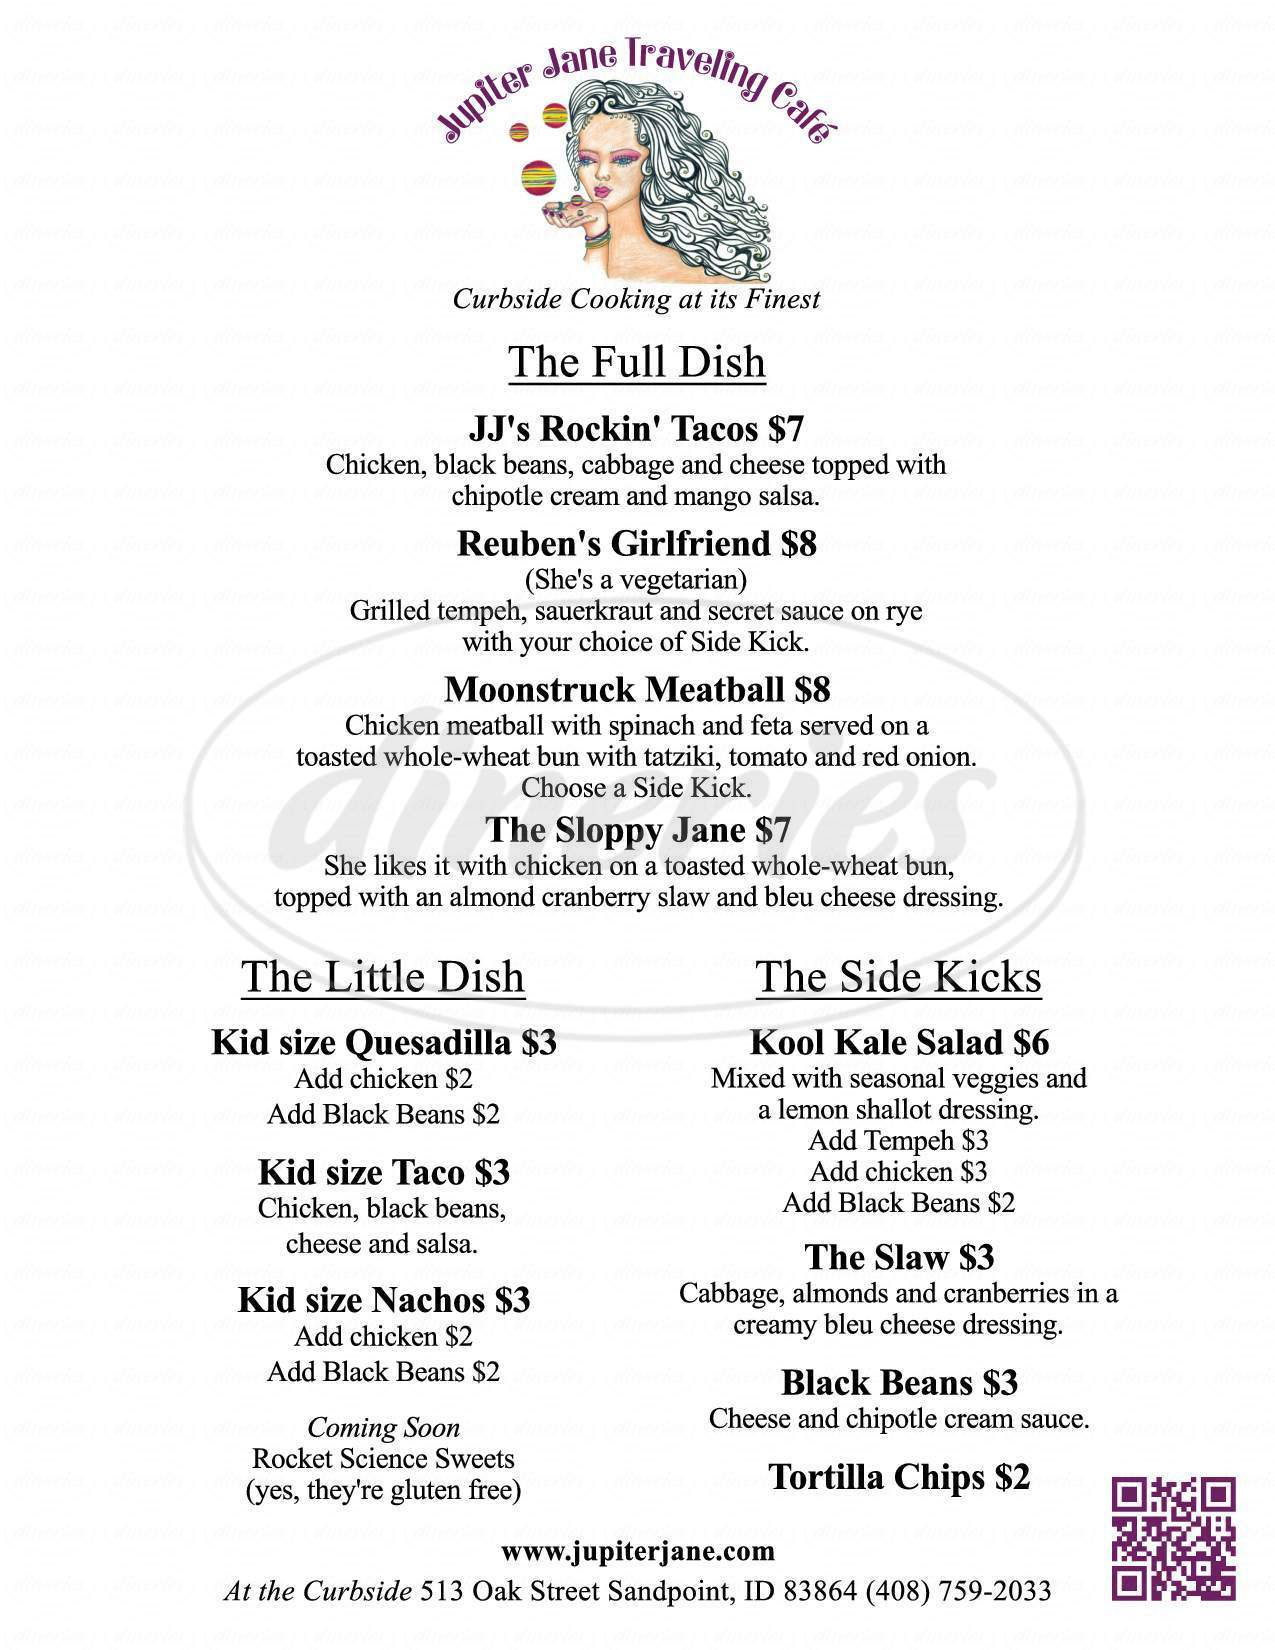 menu for Jupiter Jane Traveling Cafe